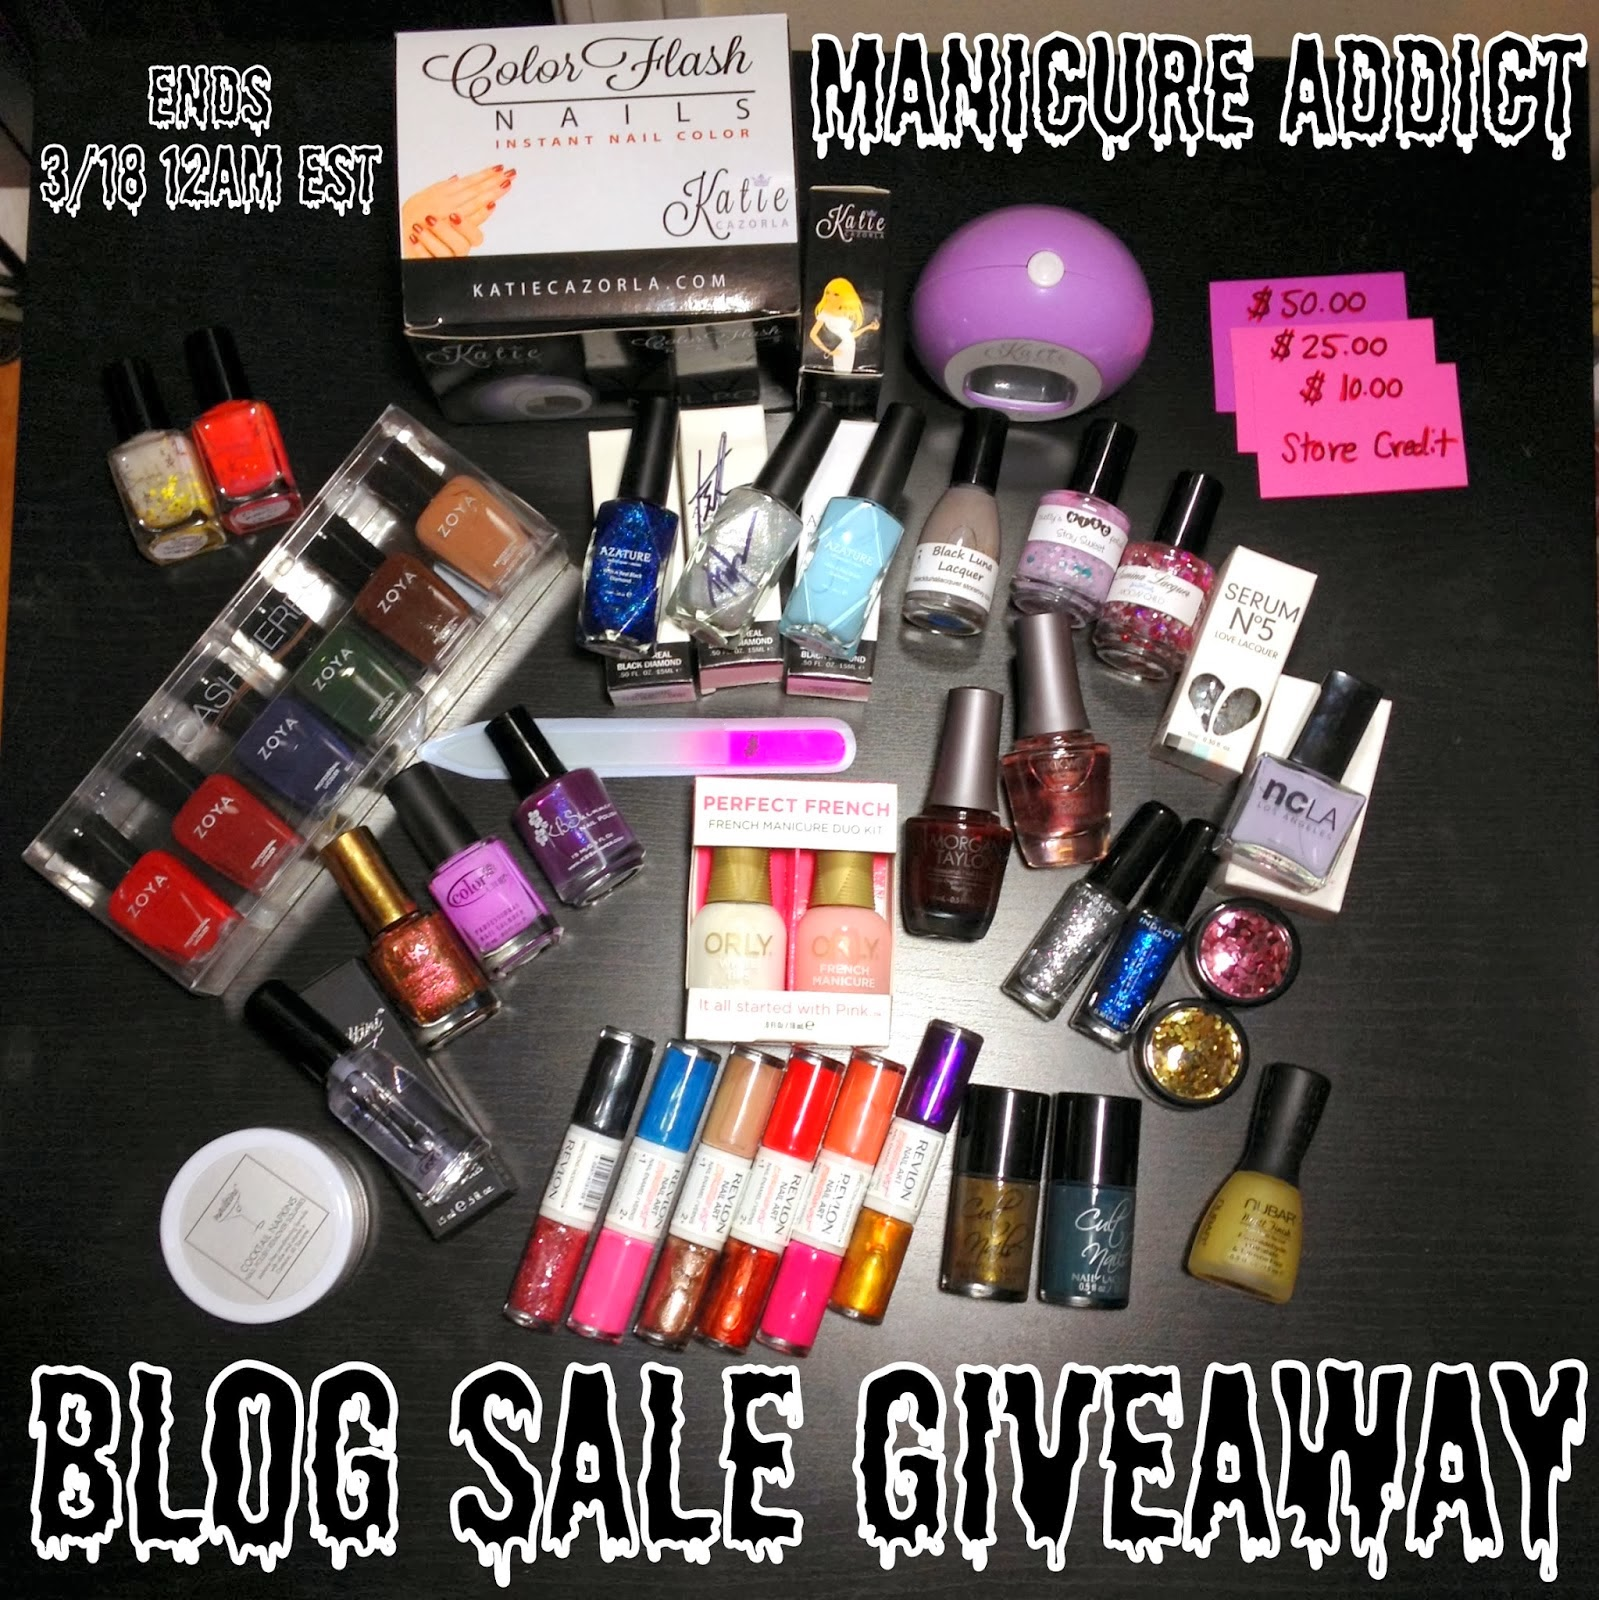 Giveaway to Celebrate my Blog Sale